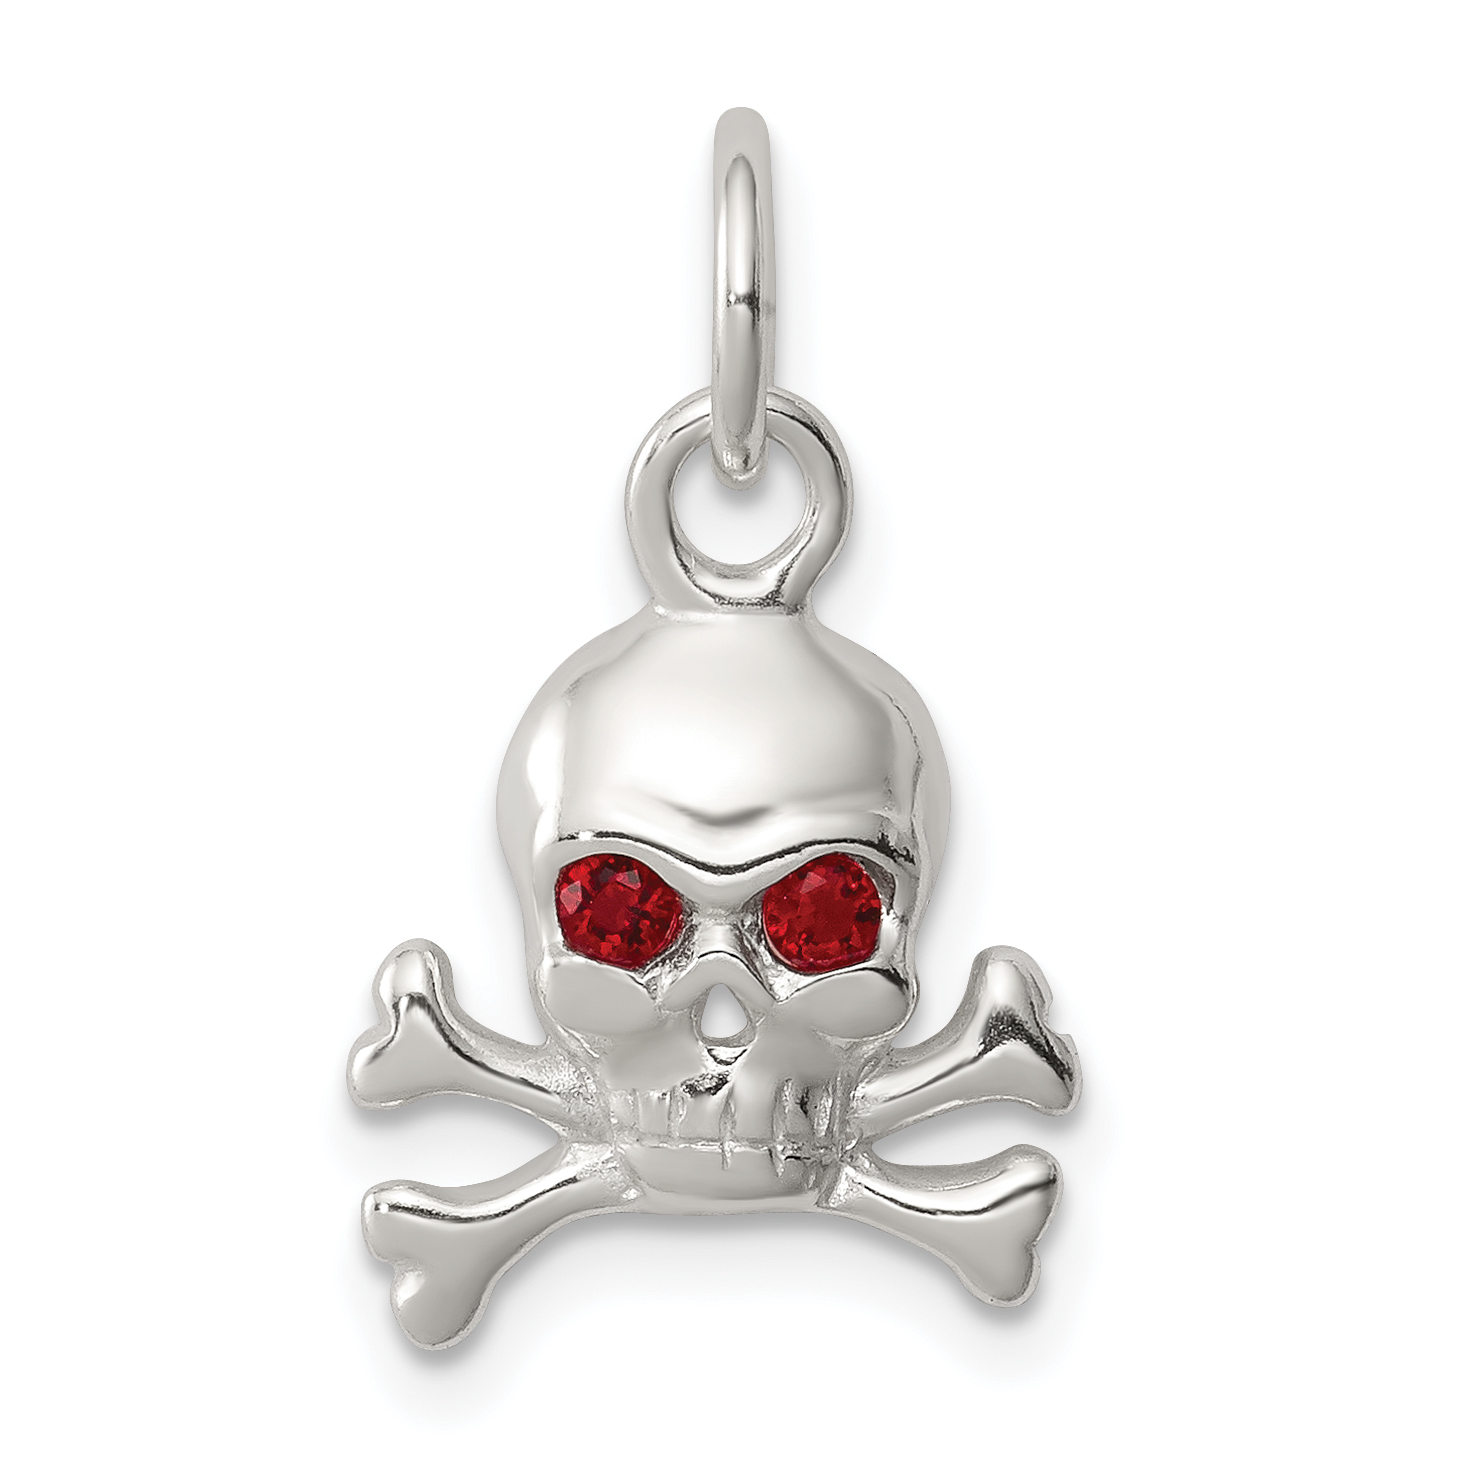 925 Sterling Silver Red Cubic Zirconia Cz Skull Pendant Charm Necklace Dagger Dragon Man Fine Jewelry Gift For Dad Mens For Him - image 2 of 2